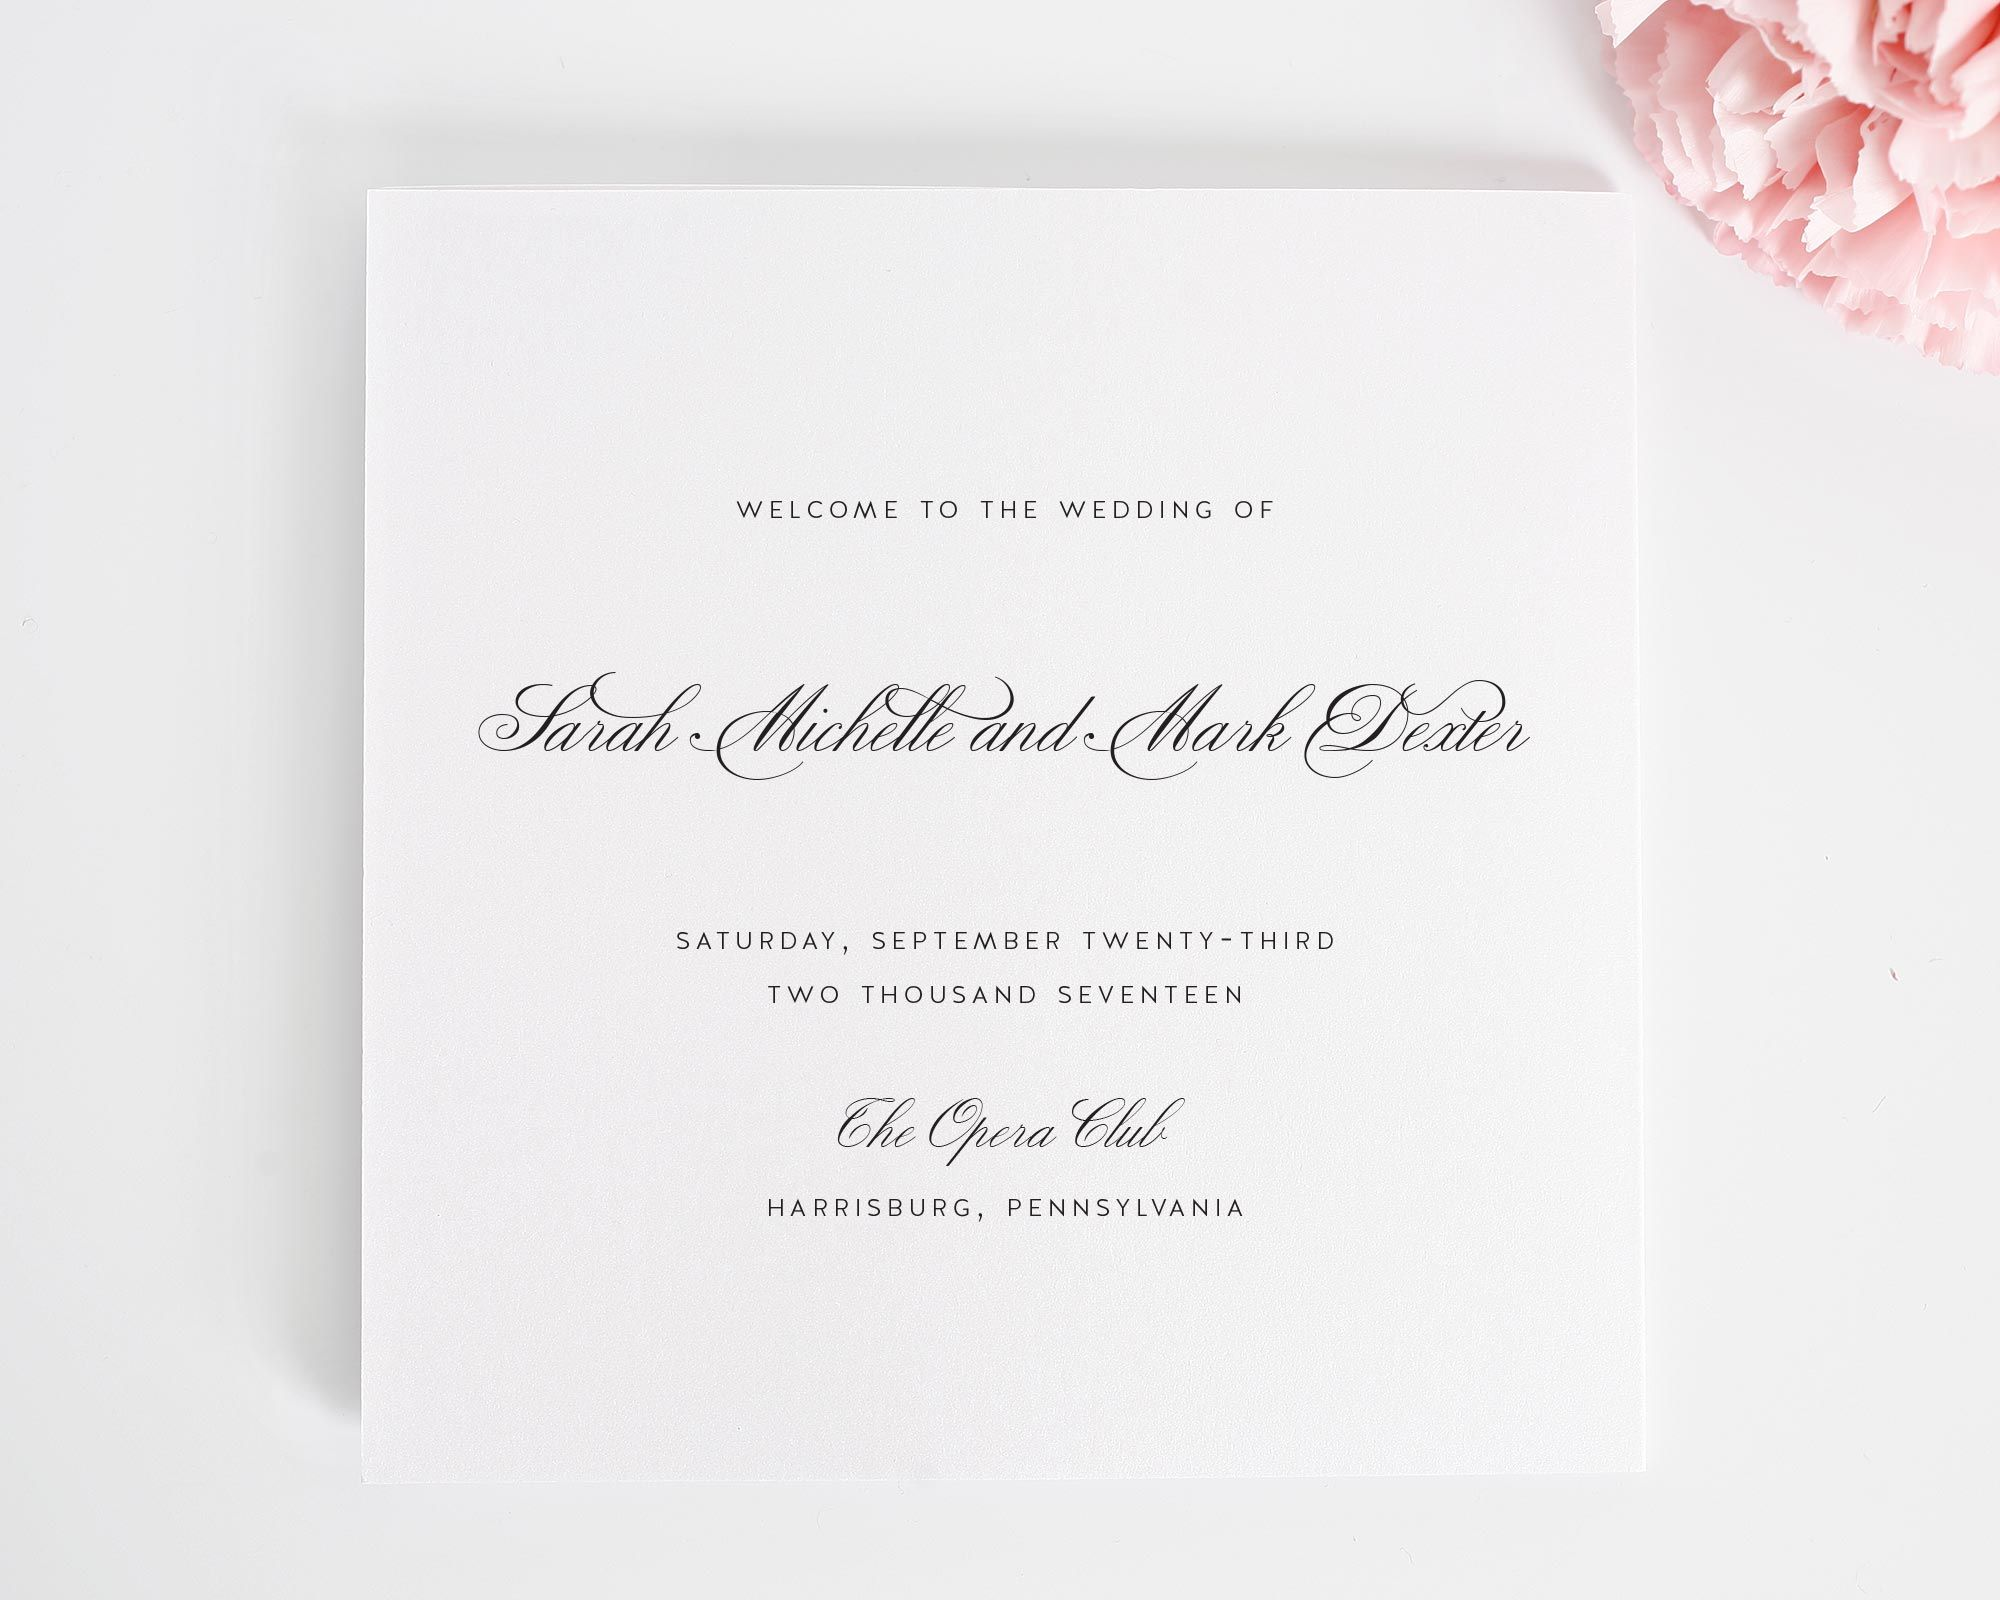 Flowing Calligraphy Wedding Invitations | Shine wedding invitations ...